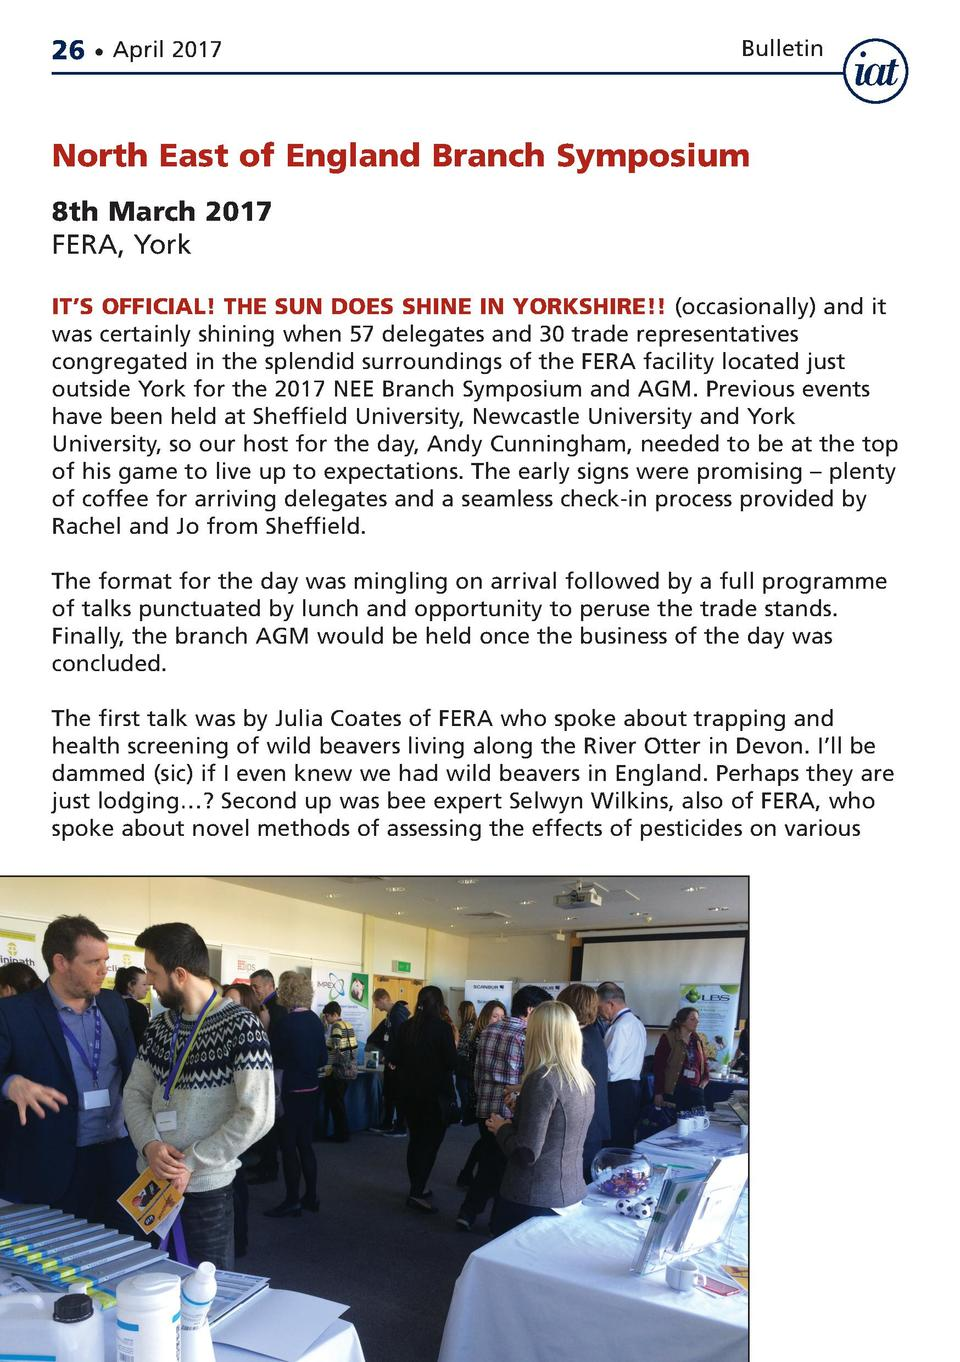 Apr17_3-720311940.e S IATB NEW  26     April 2017  13 4 17  08 06  Page 26  Bulletin  North East of England Branch Symposi...